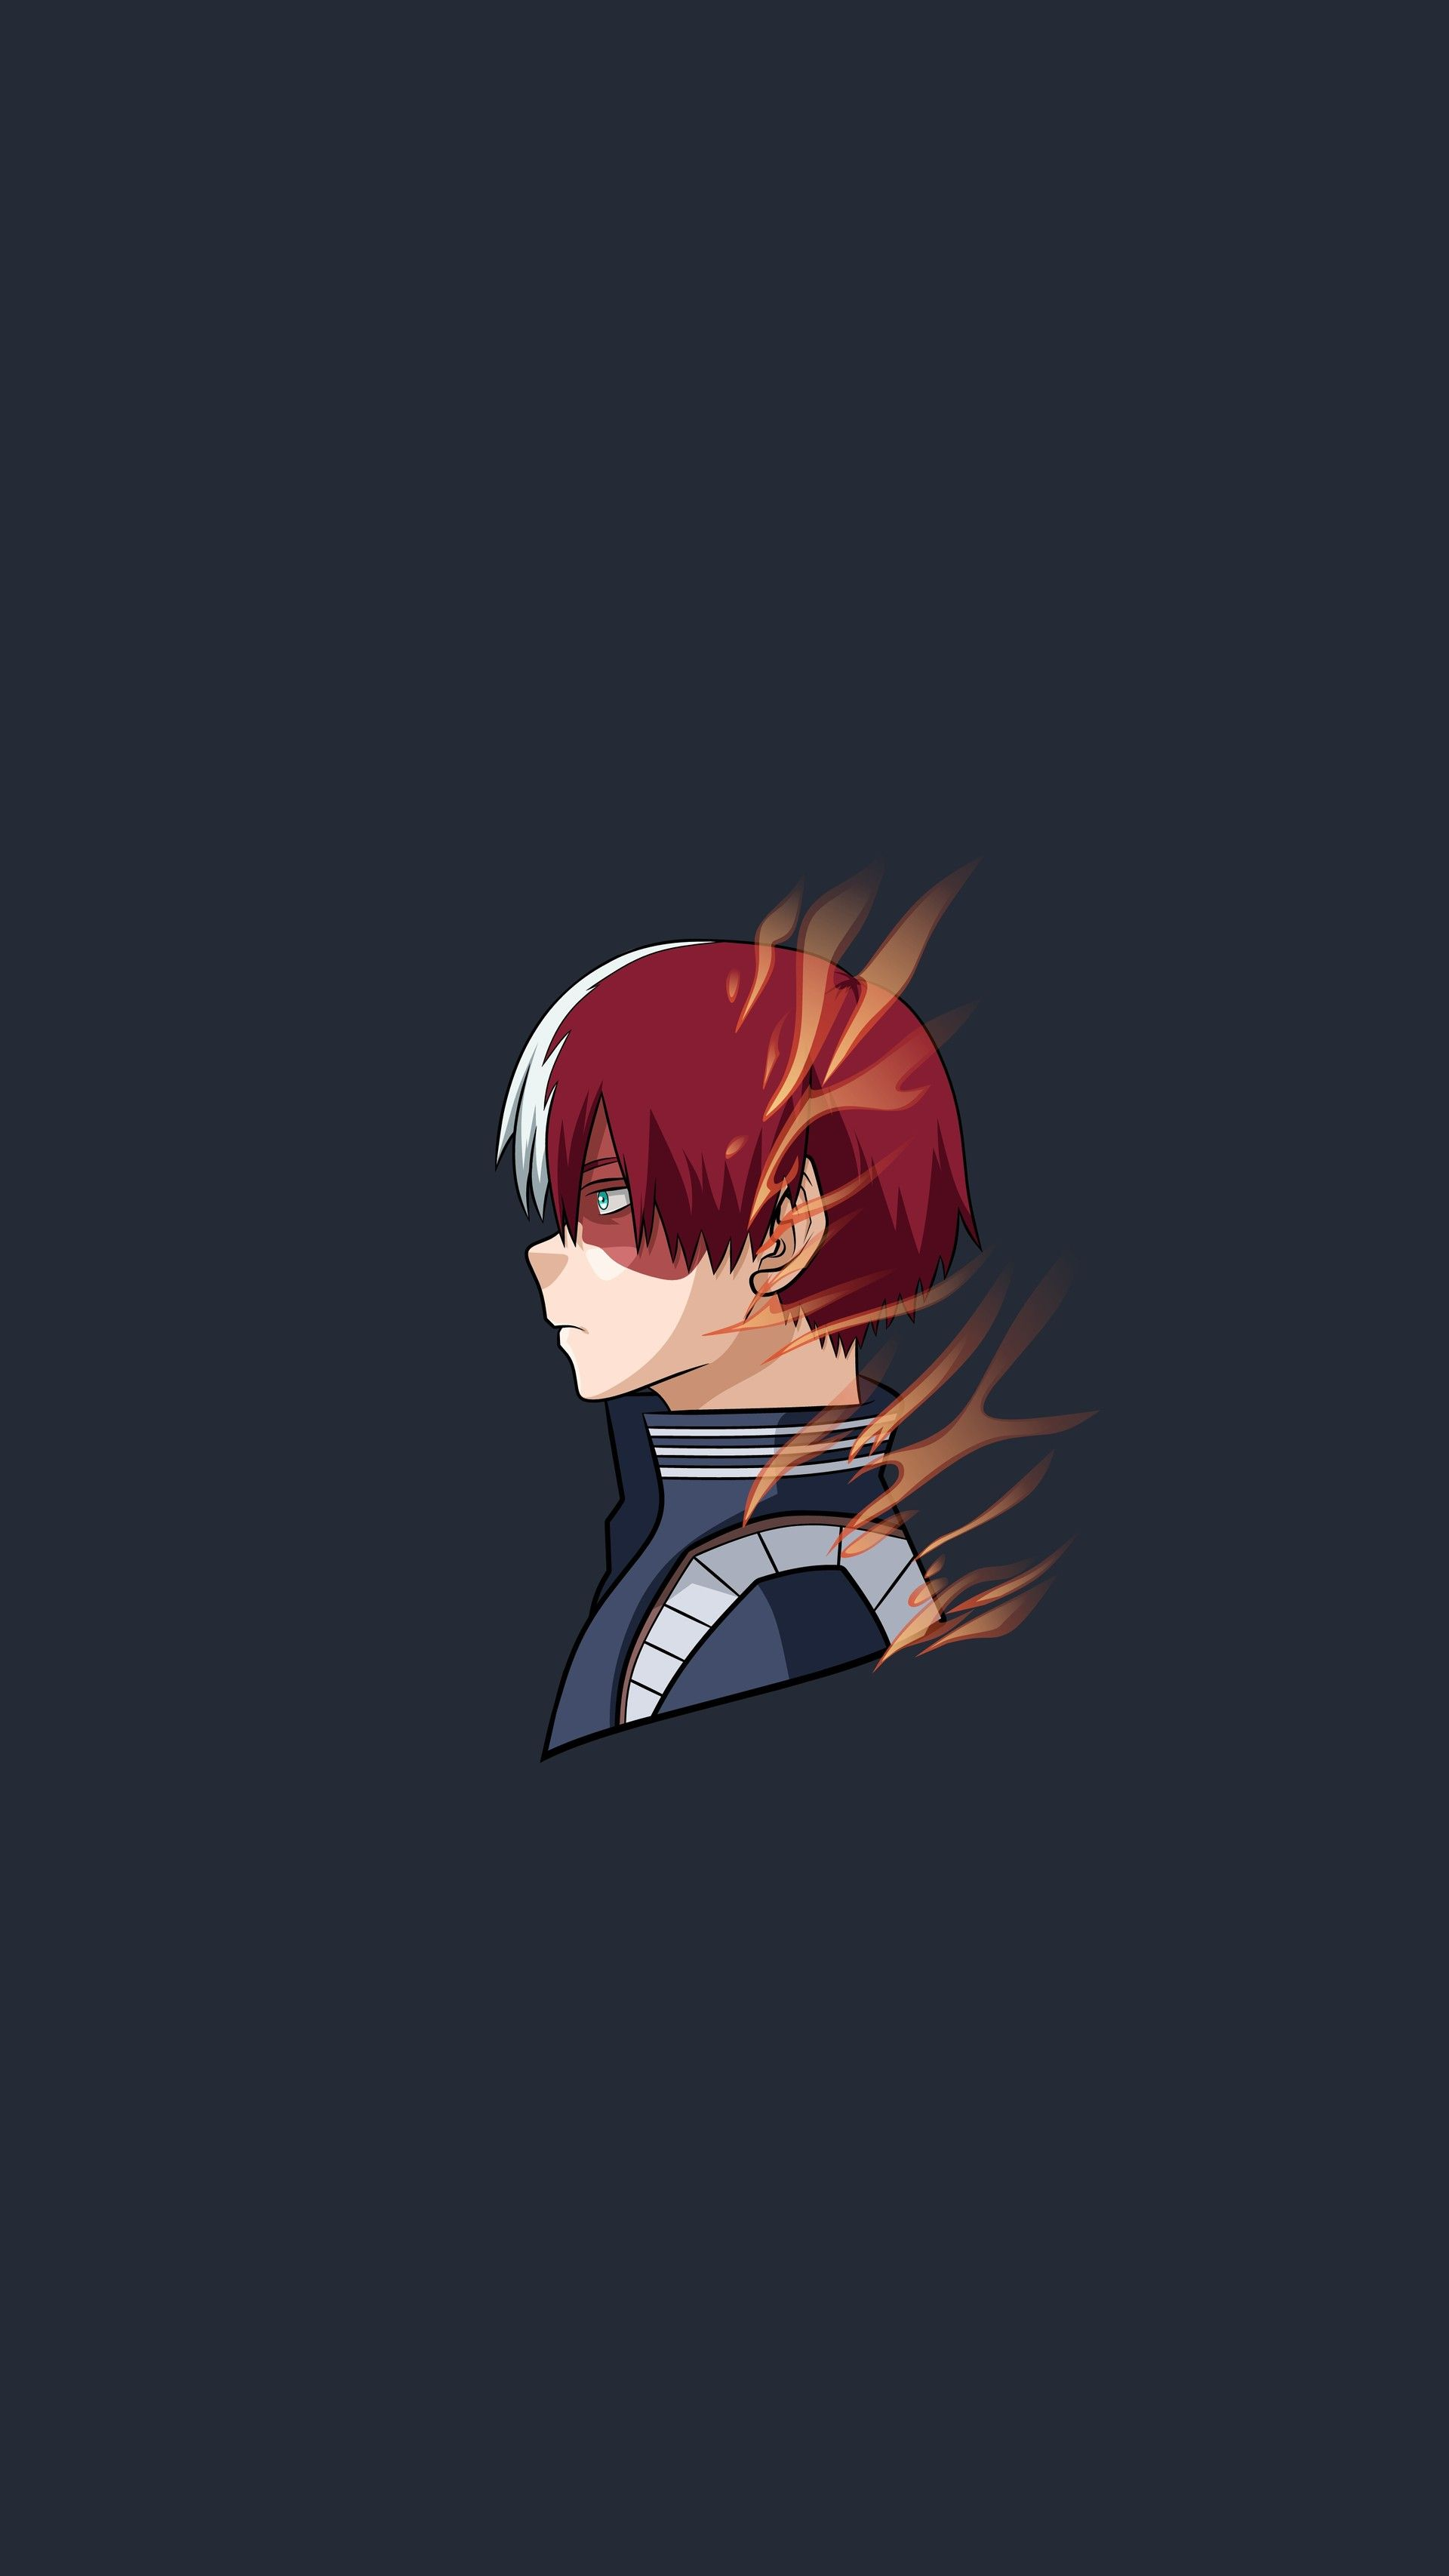 Artstation Todoroki Shoto Popheadshot Still Alive Artworks Hero Wallpaper Anime Wallpaper Cute Anime Wallpaper